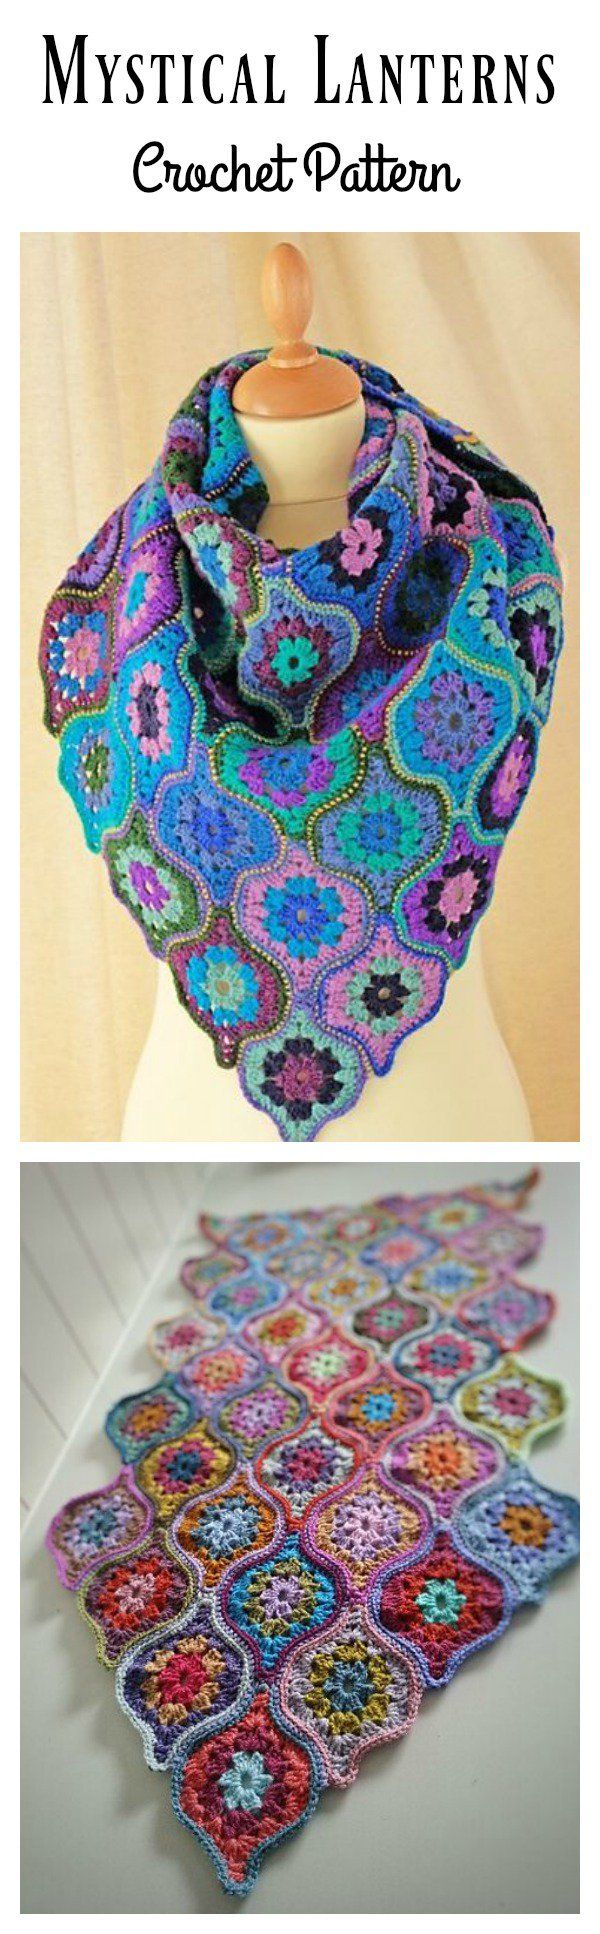 Mystical Lanterns Crochet Pattern